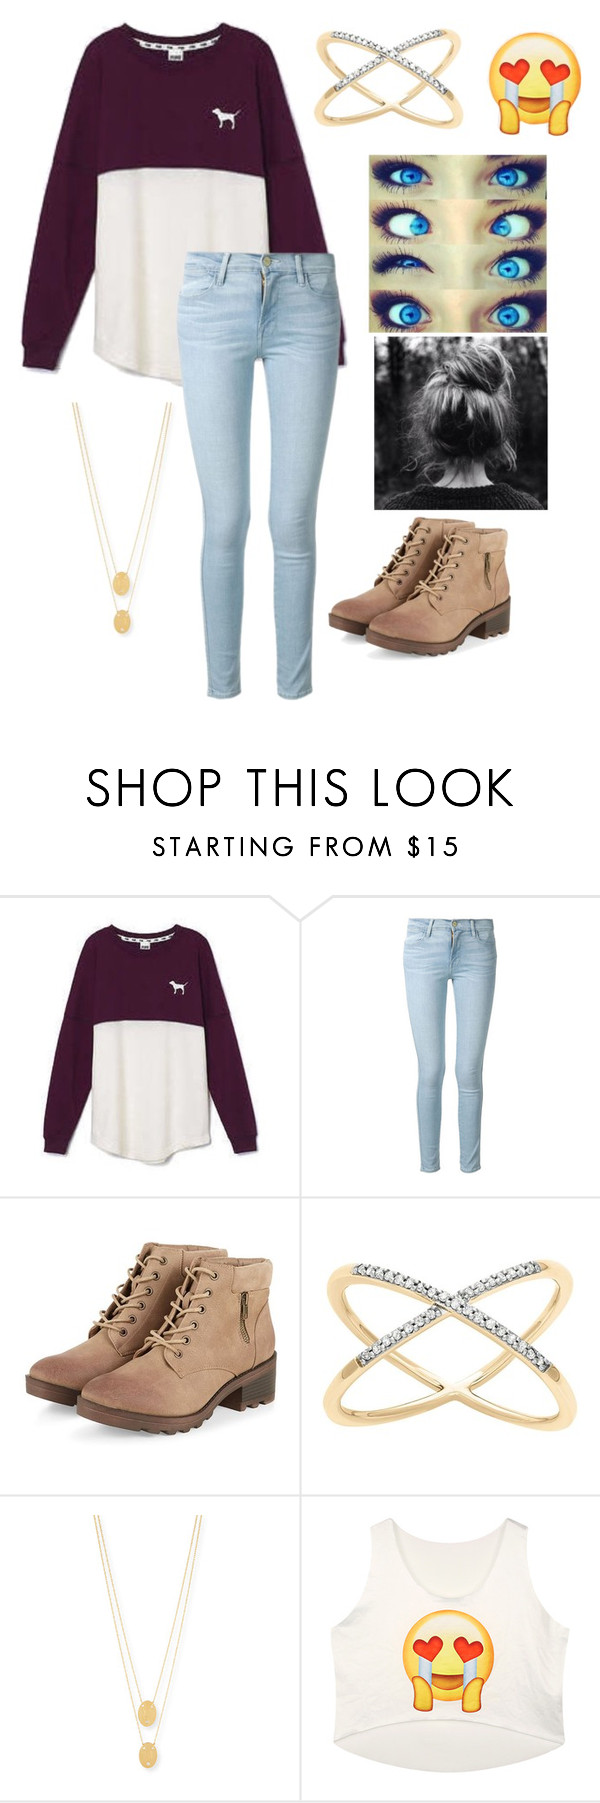 """""""Untitled #100"""" by sunnybrown ❤ liked on Polyvore featuring Victoria's Secret, Frame Denim and Jennifer Zeuner"""